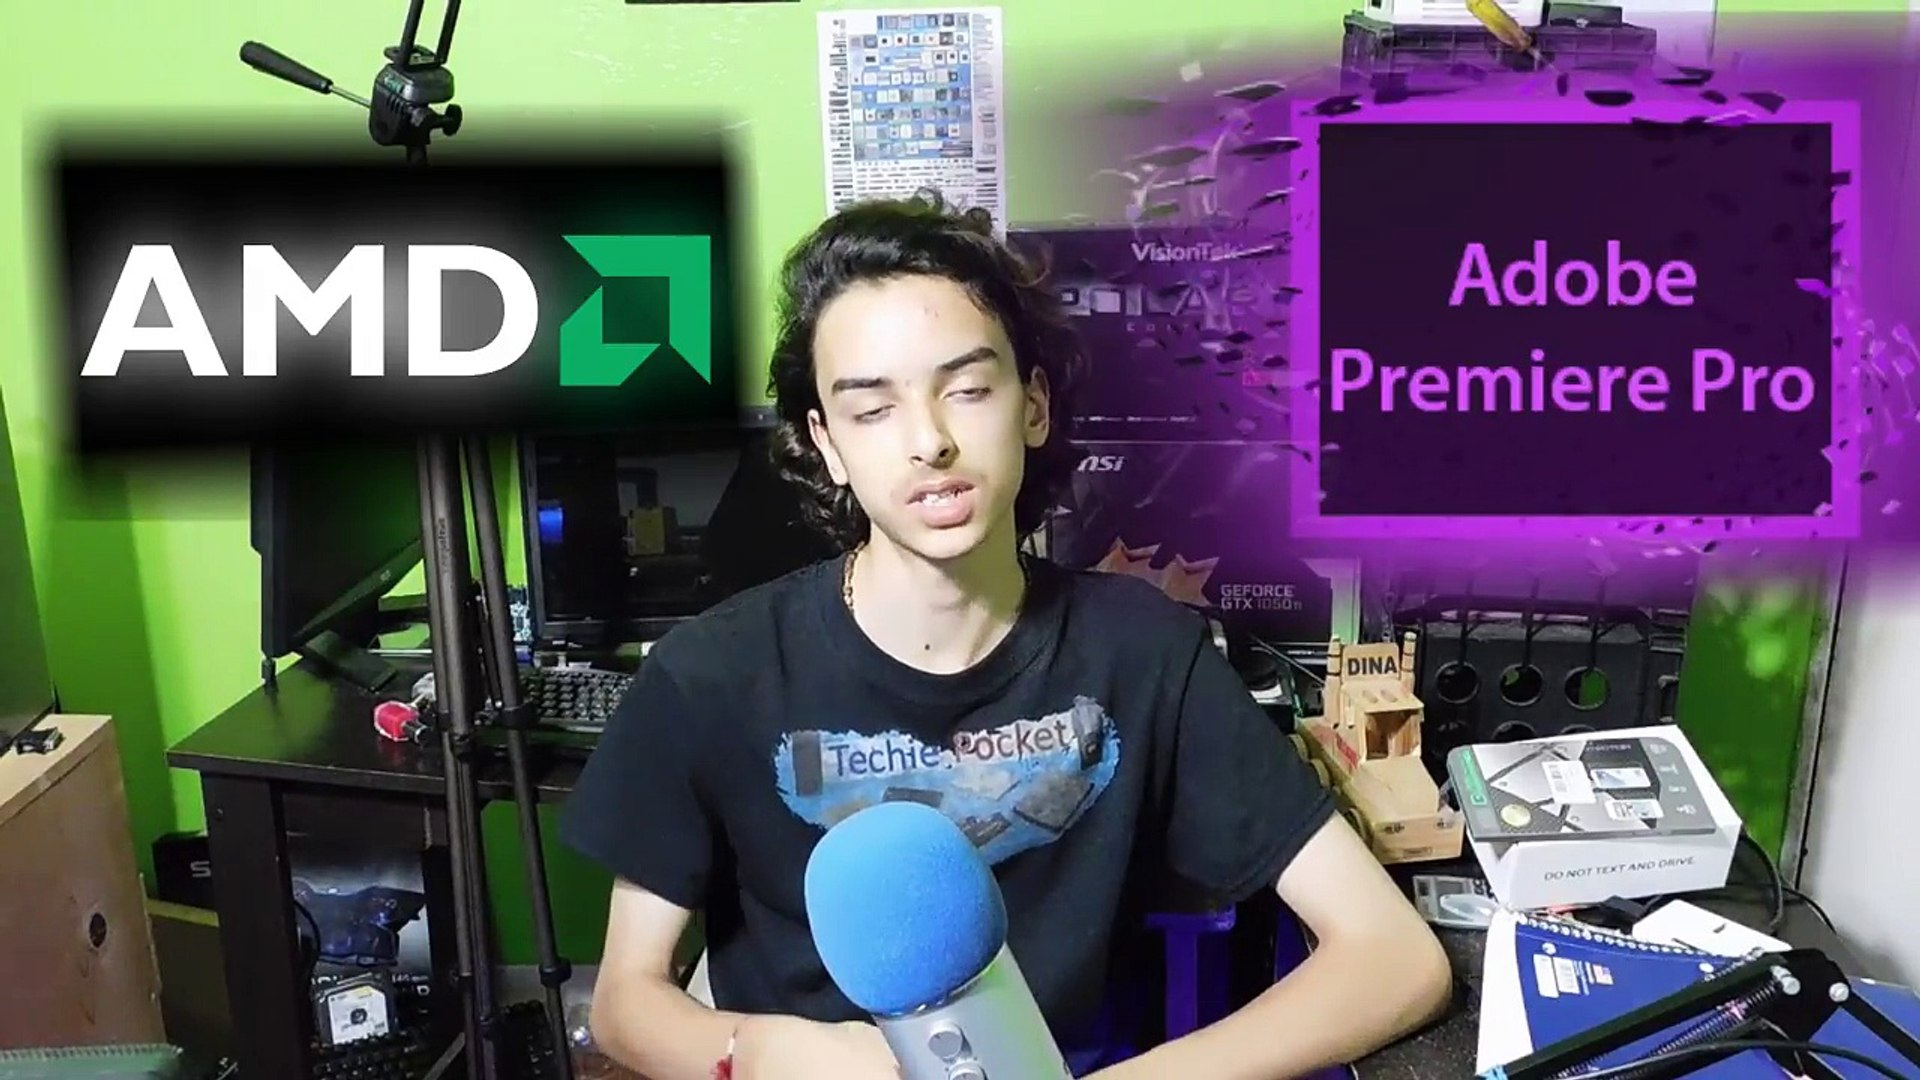 HowTo Enable OpenCL for AMD Cards in Premiere Pro CC 2017